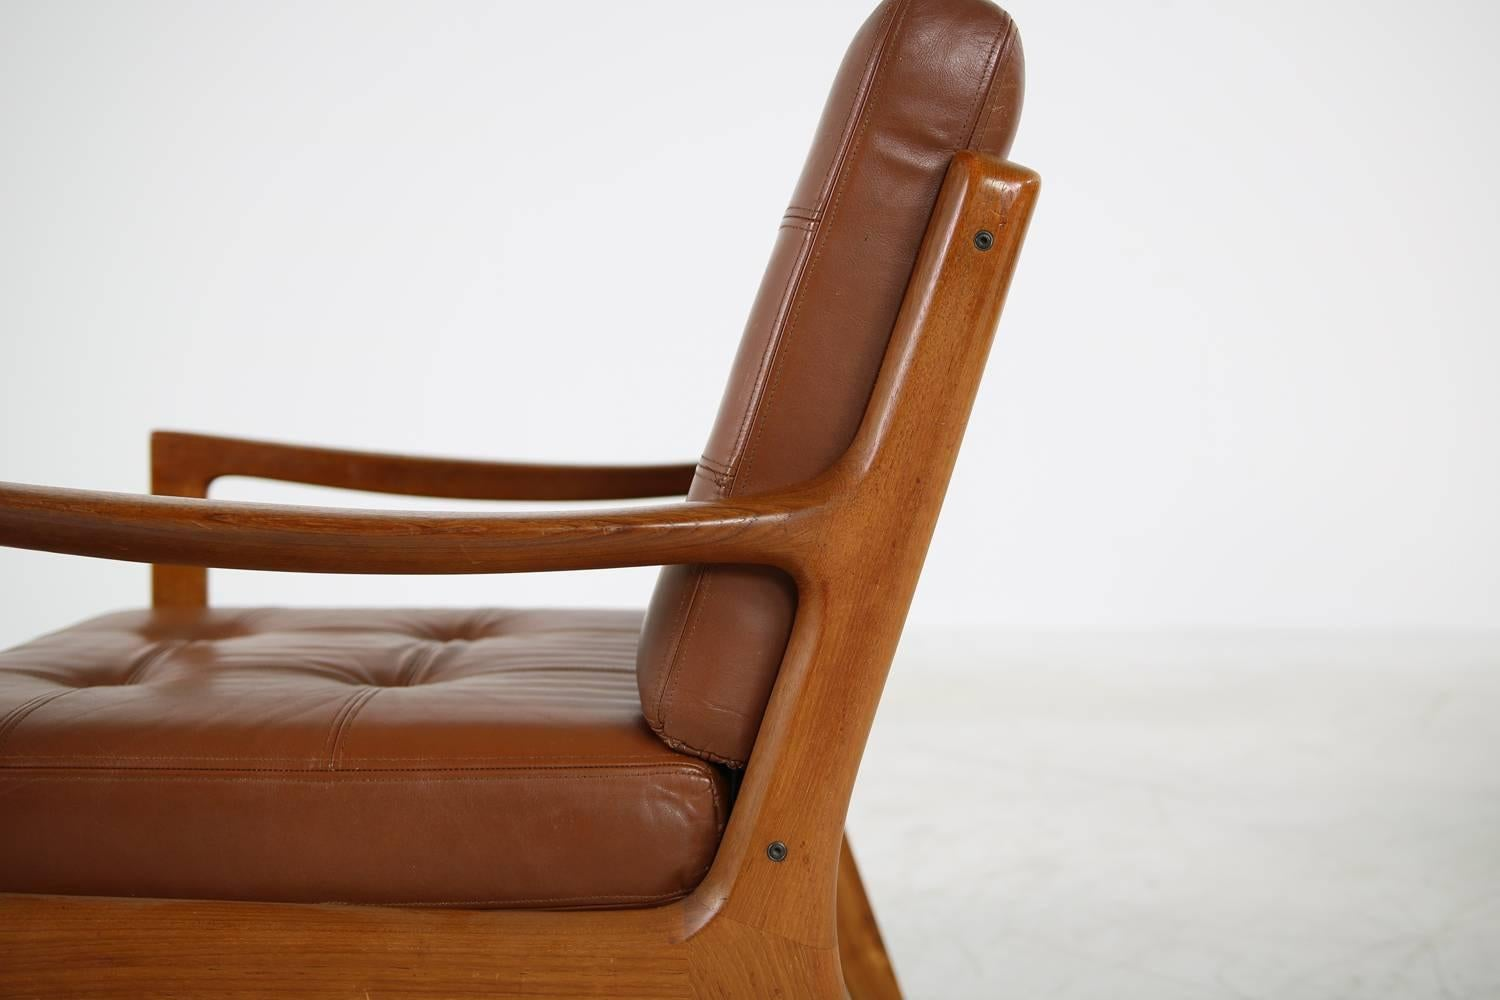 Ole Wanscher Sessel Pair Of Danish 1960s Teak And Brown Leather Lounge Easy Chairs By Ole Wanscher